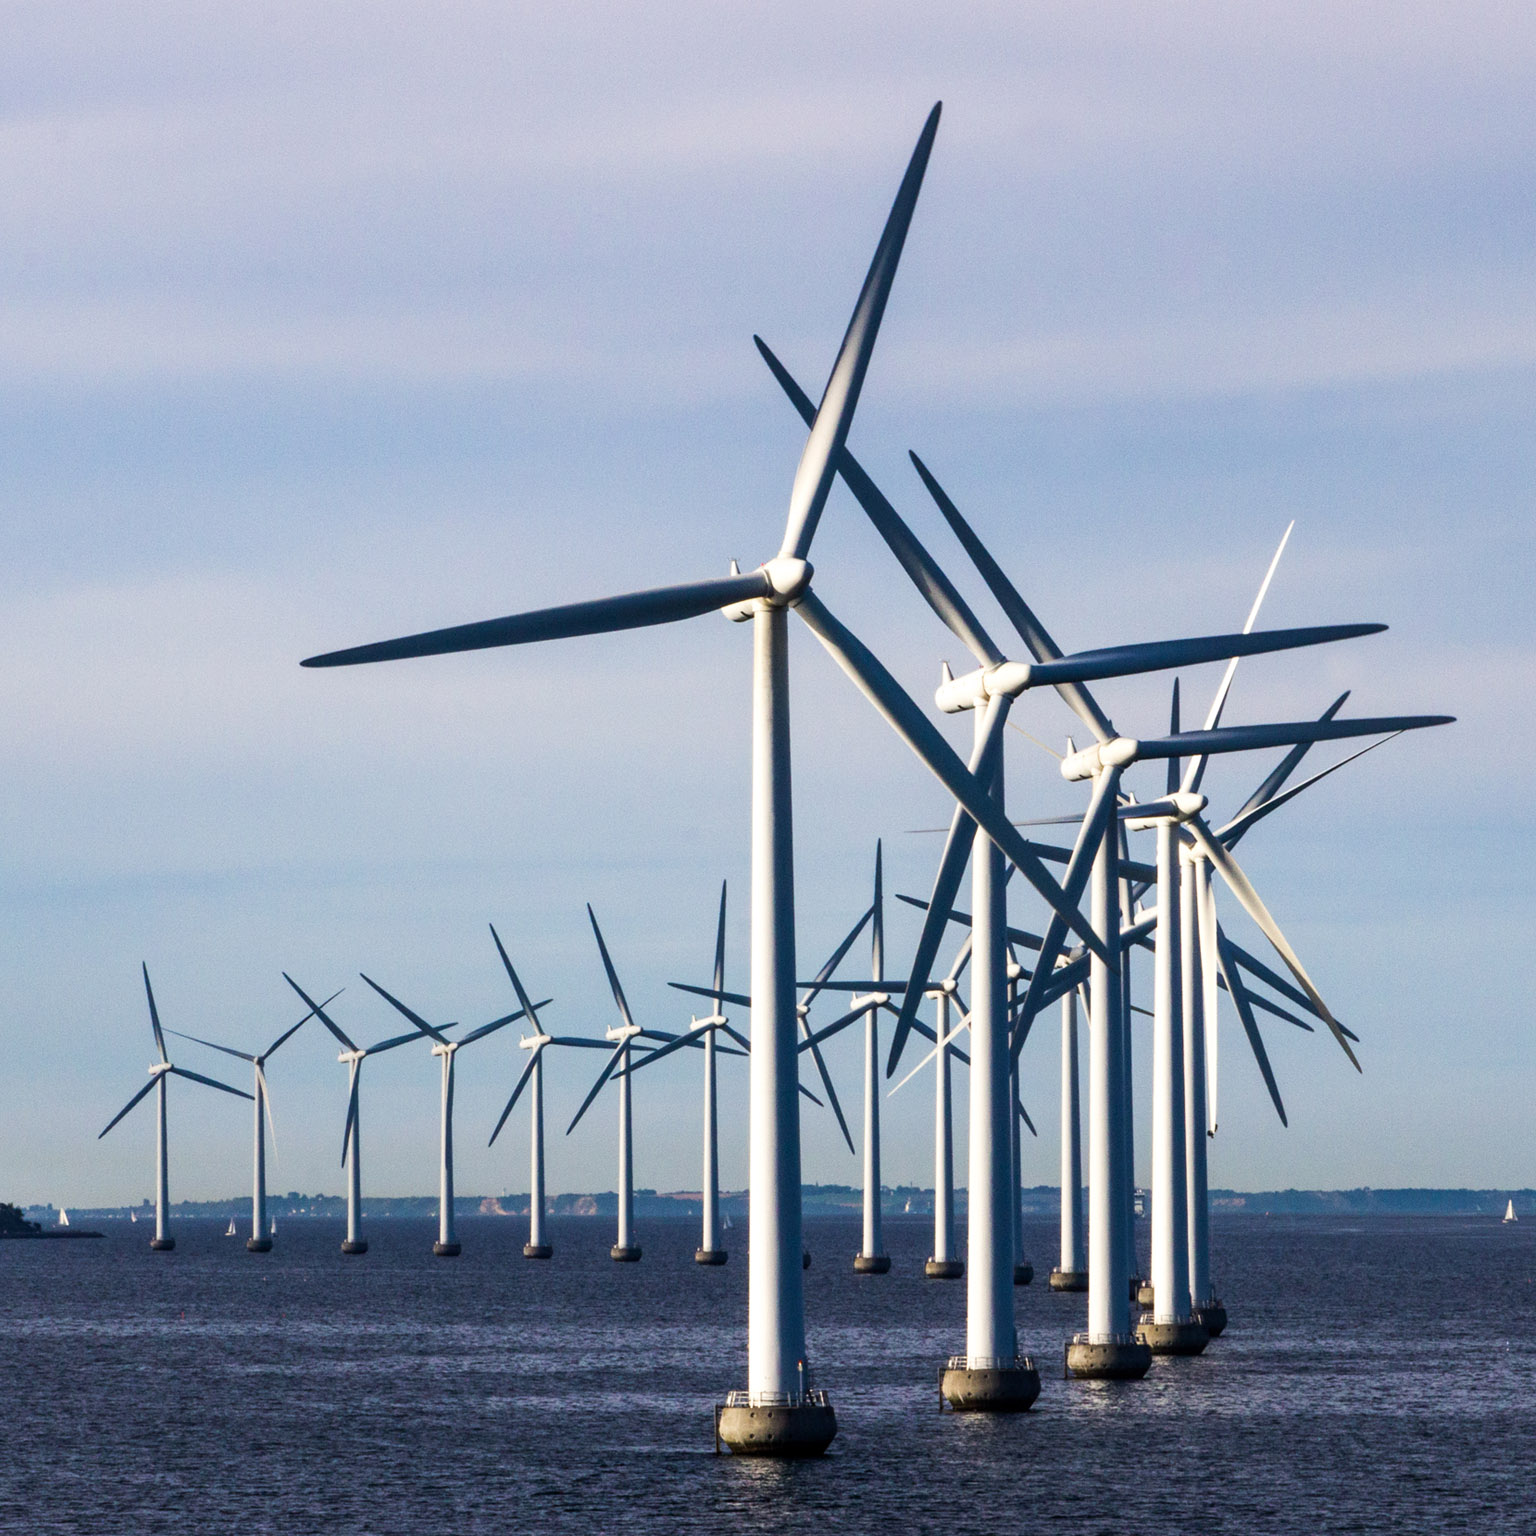 The revenue outlook for offshore-wind projects | McKinsey